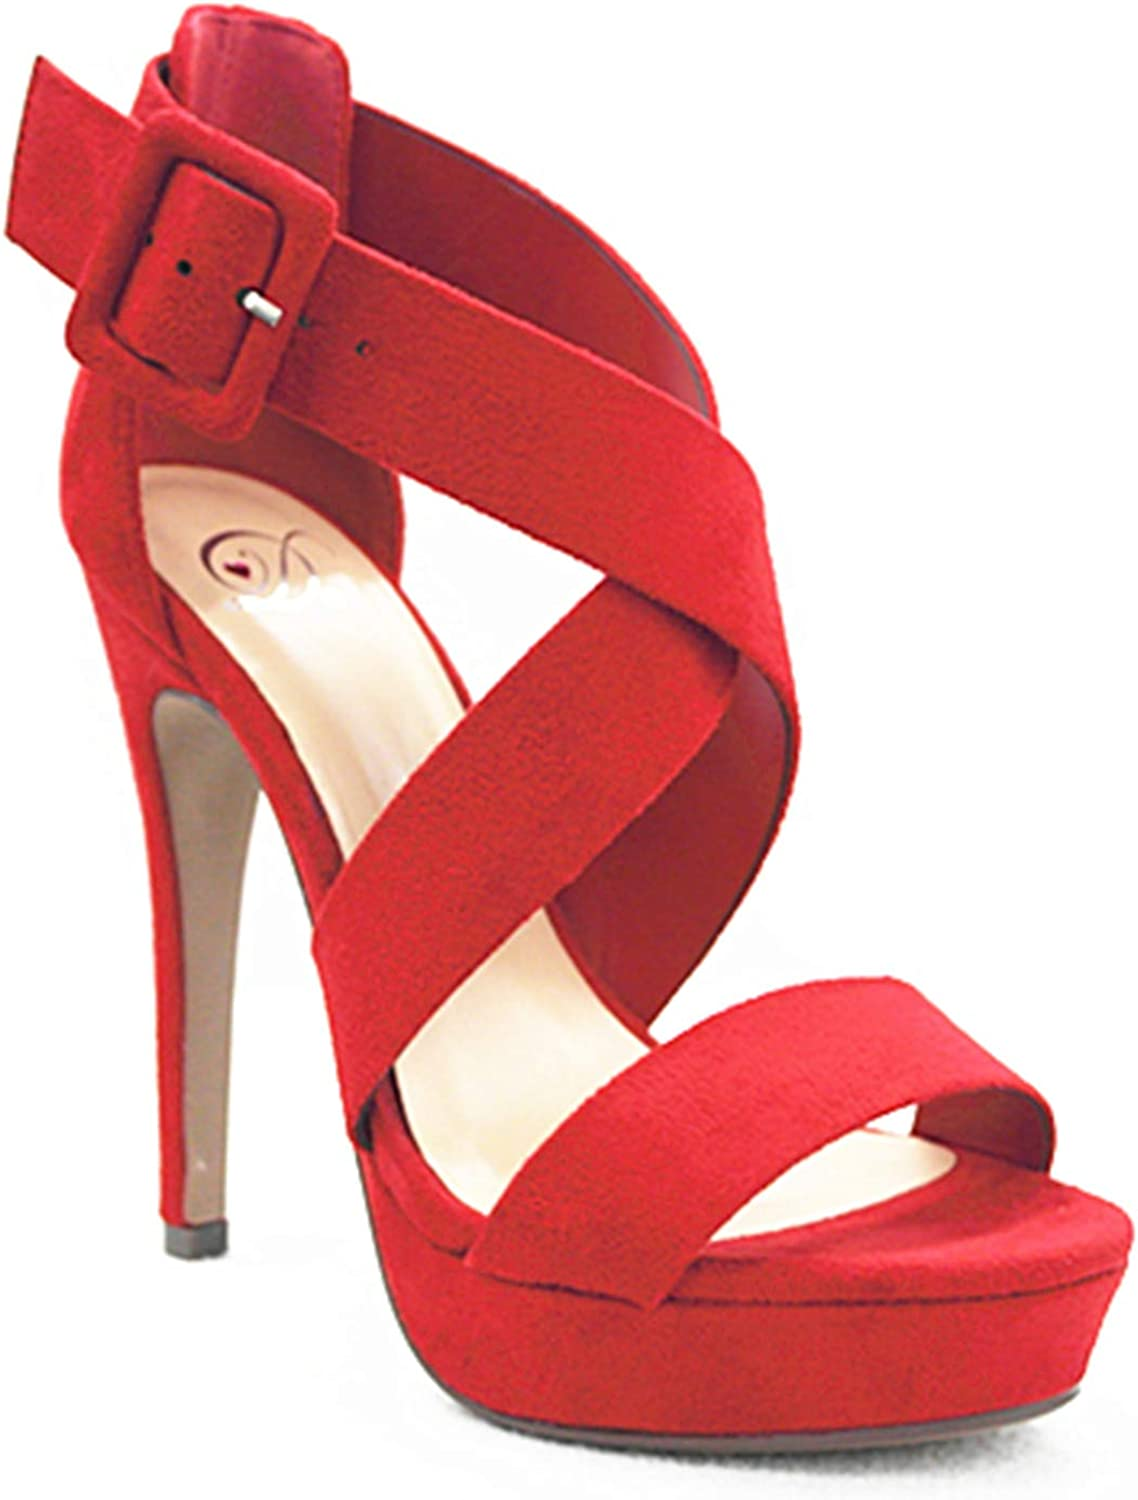 MVE shoes Women's Open Toe Strappy High Heel Sandals, Summer RED SU 6